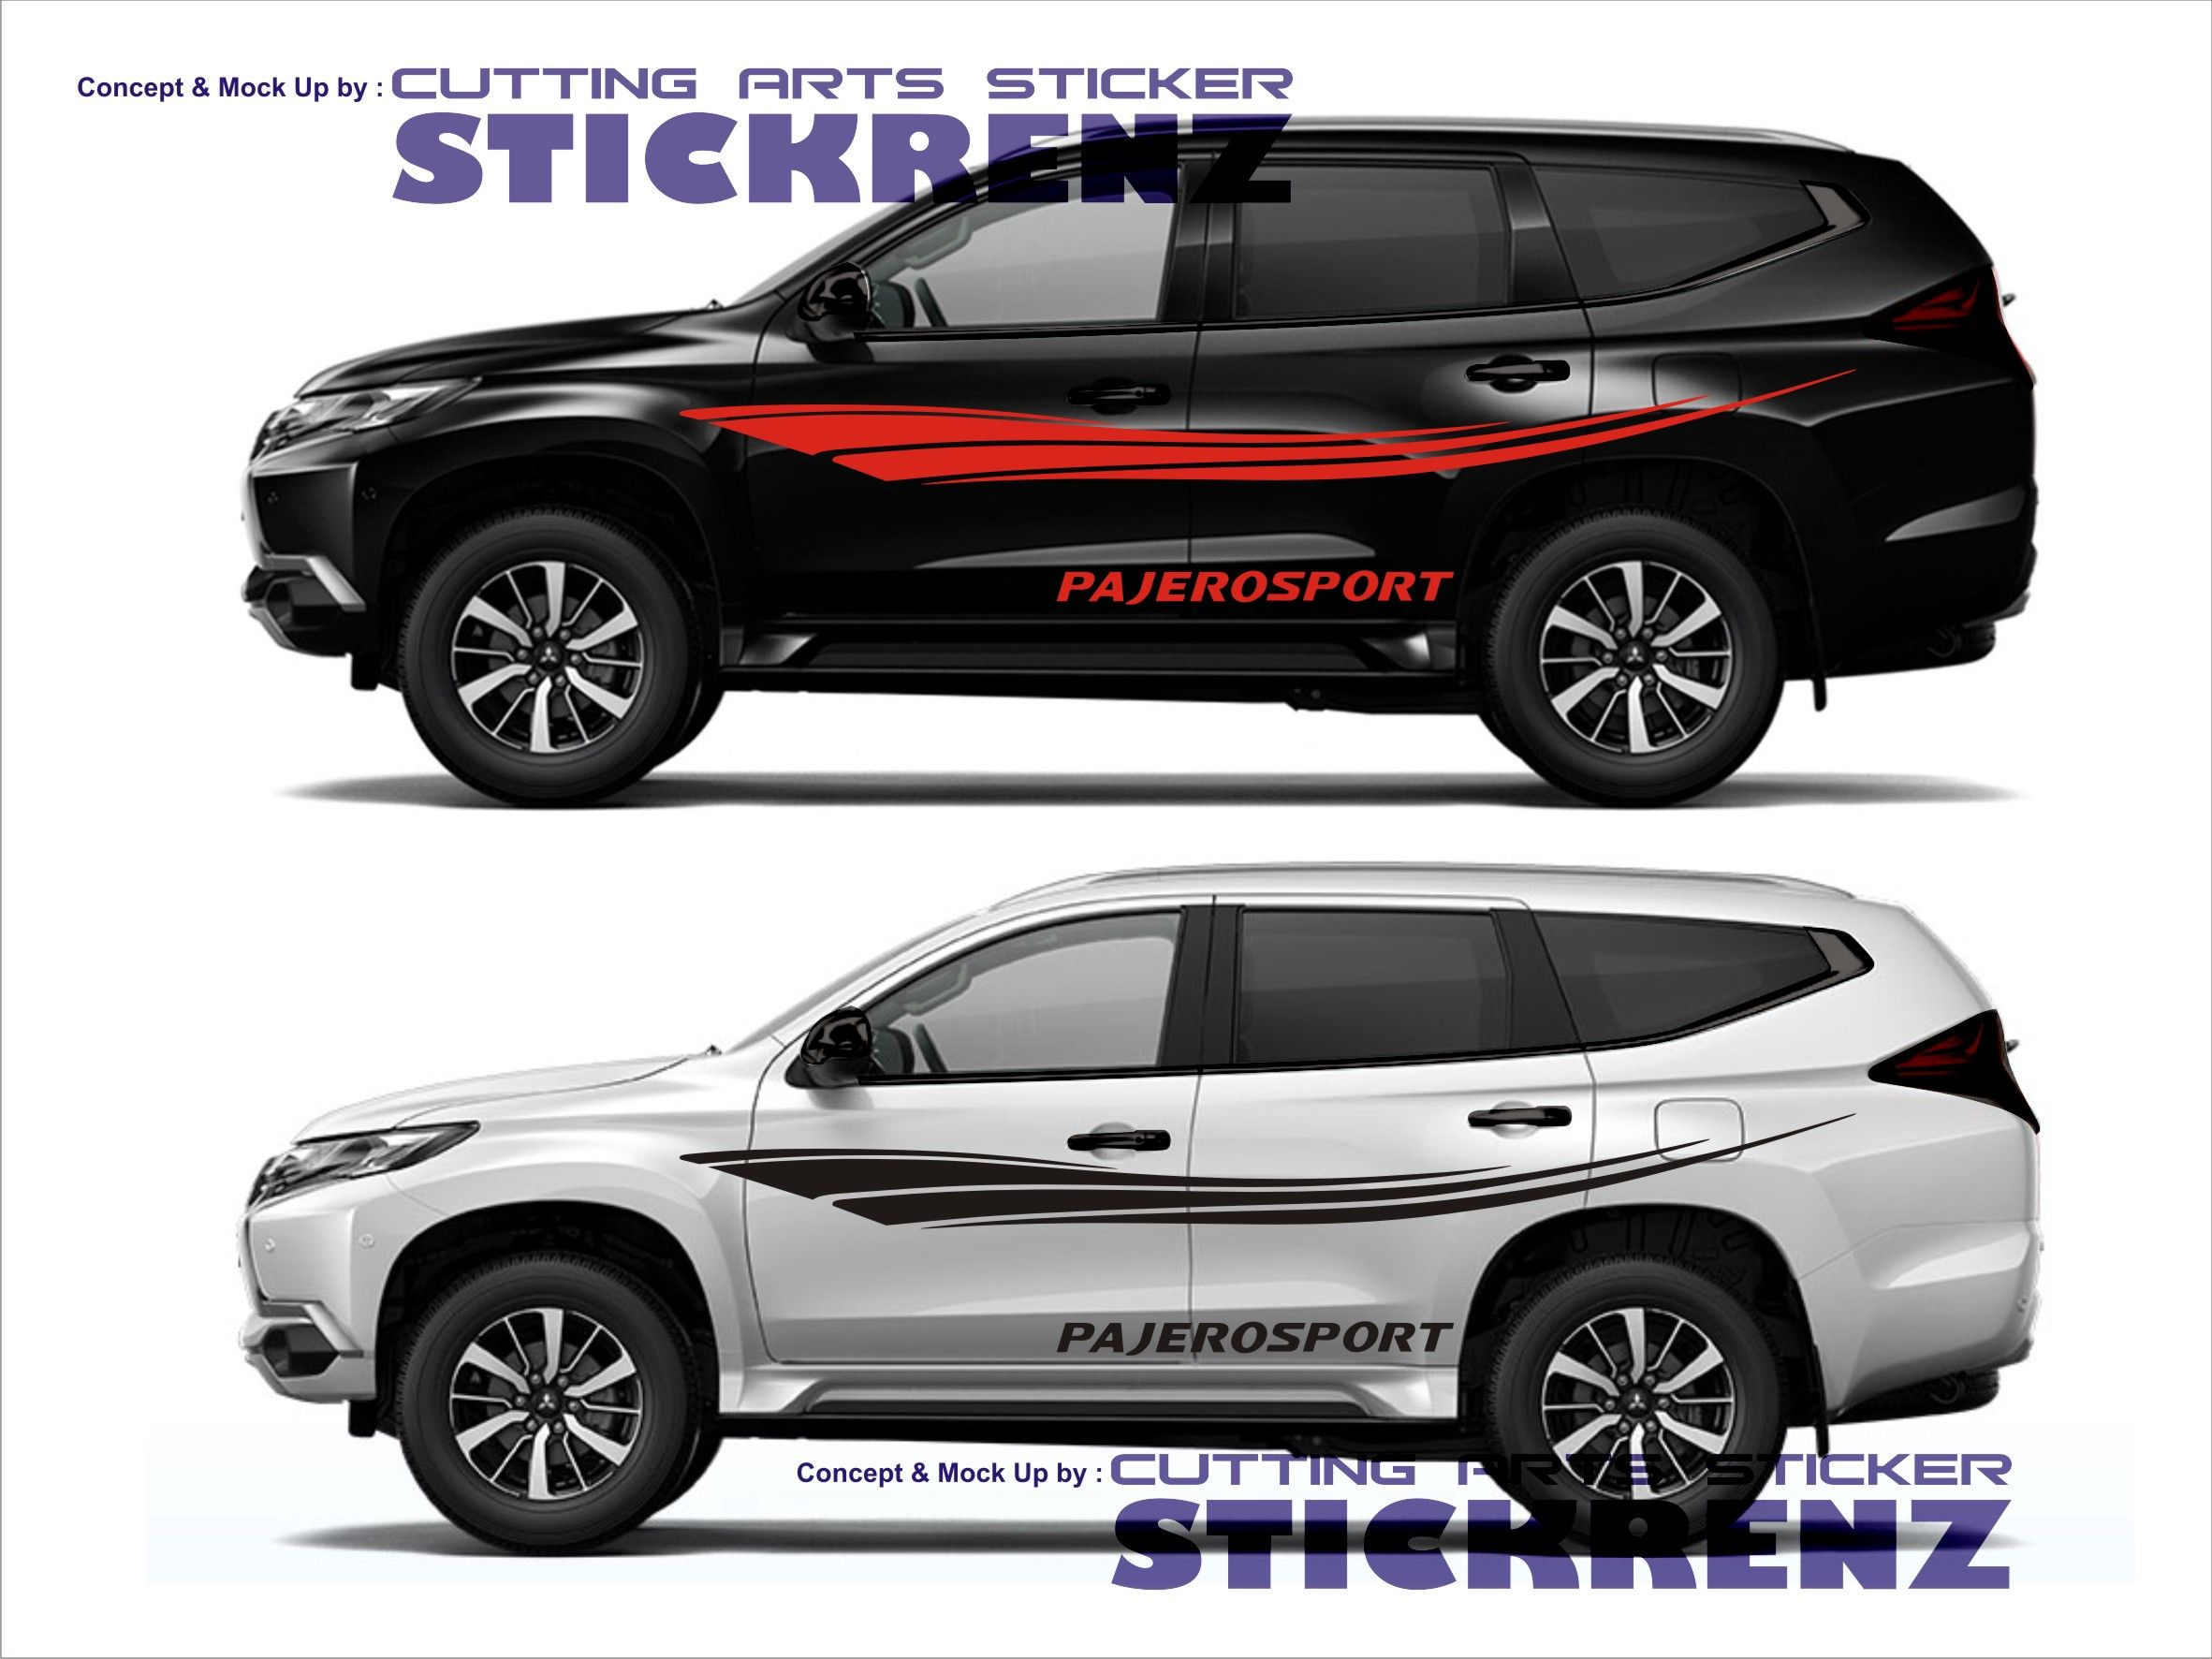 Car custom side cutting sticker concept pajero 006 sticker mobil